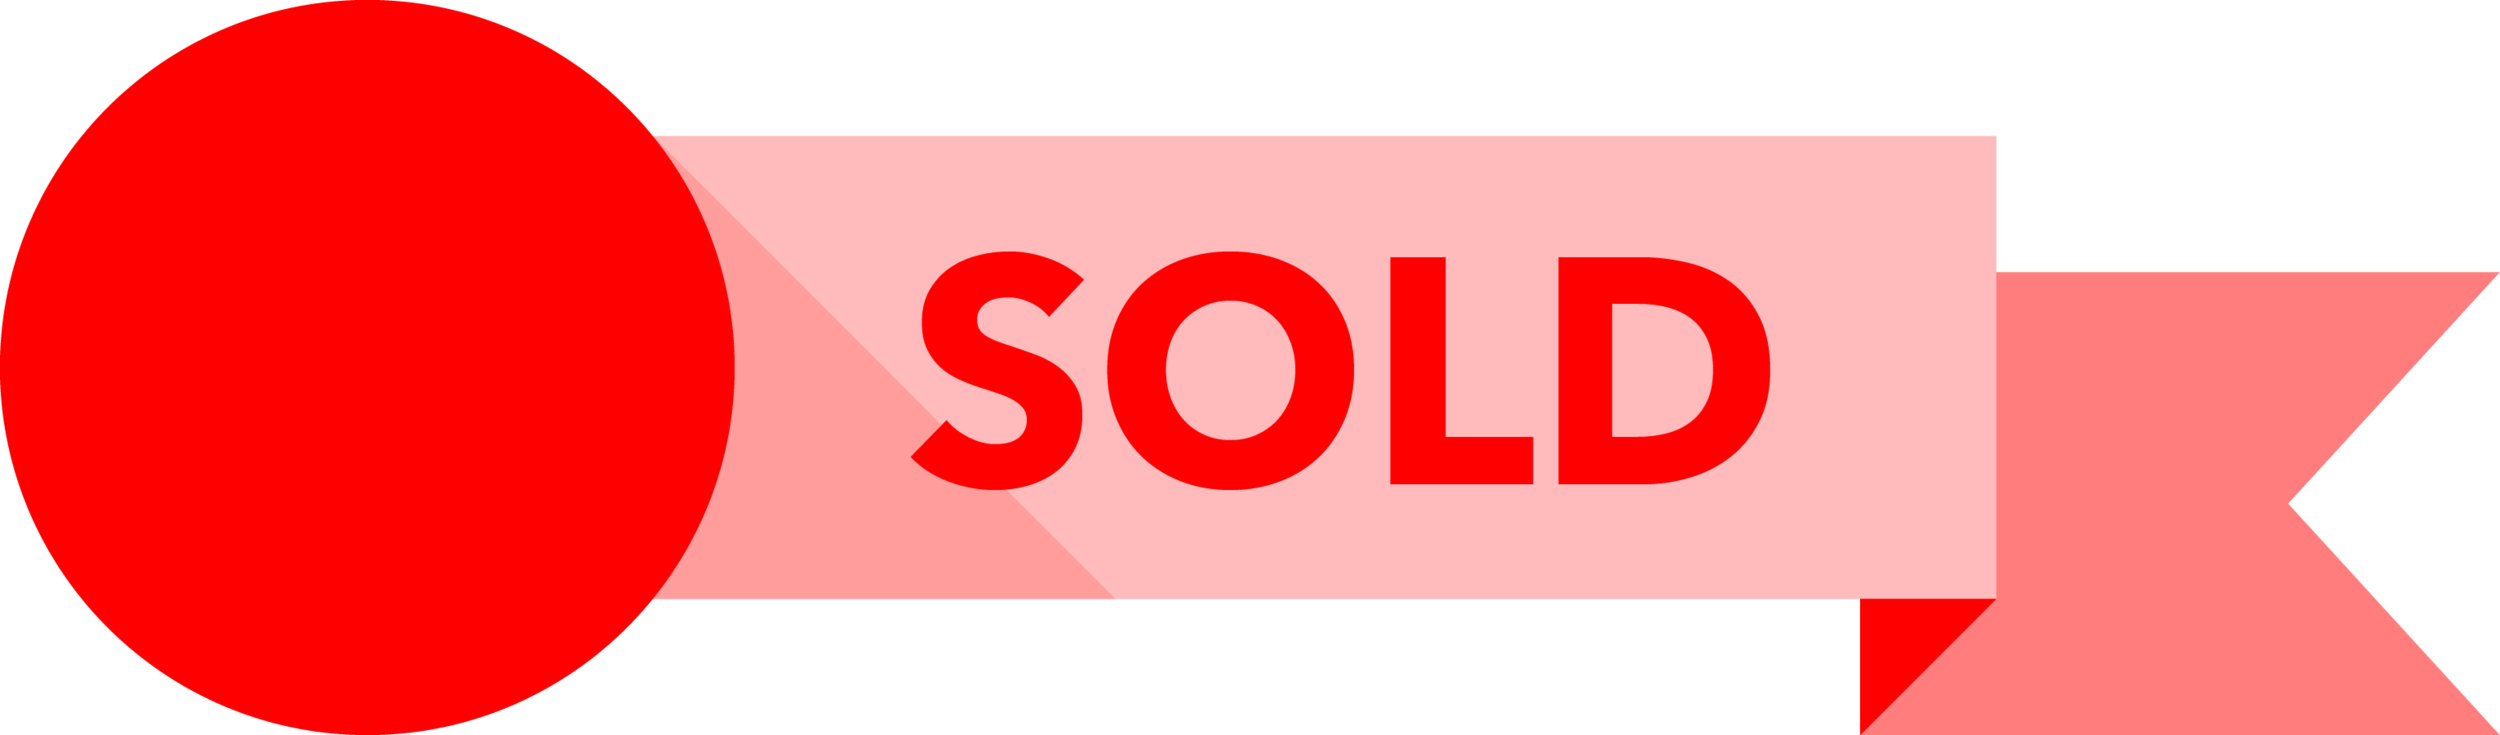 Sold Graphic.png